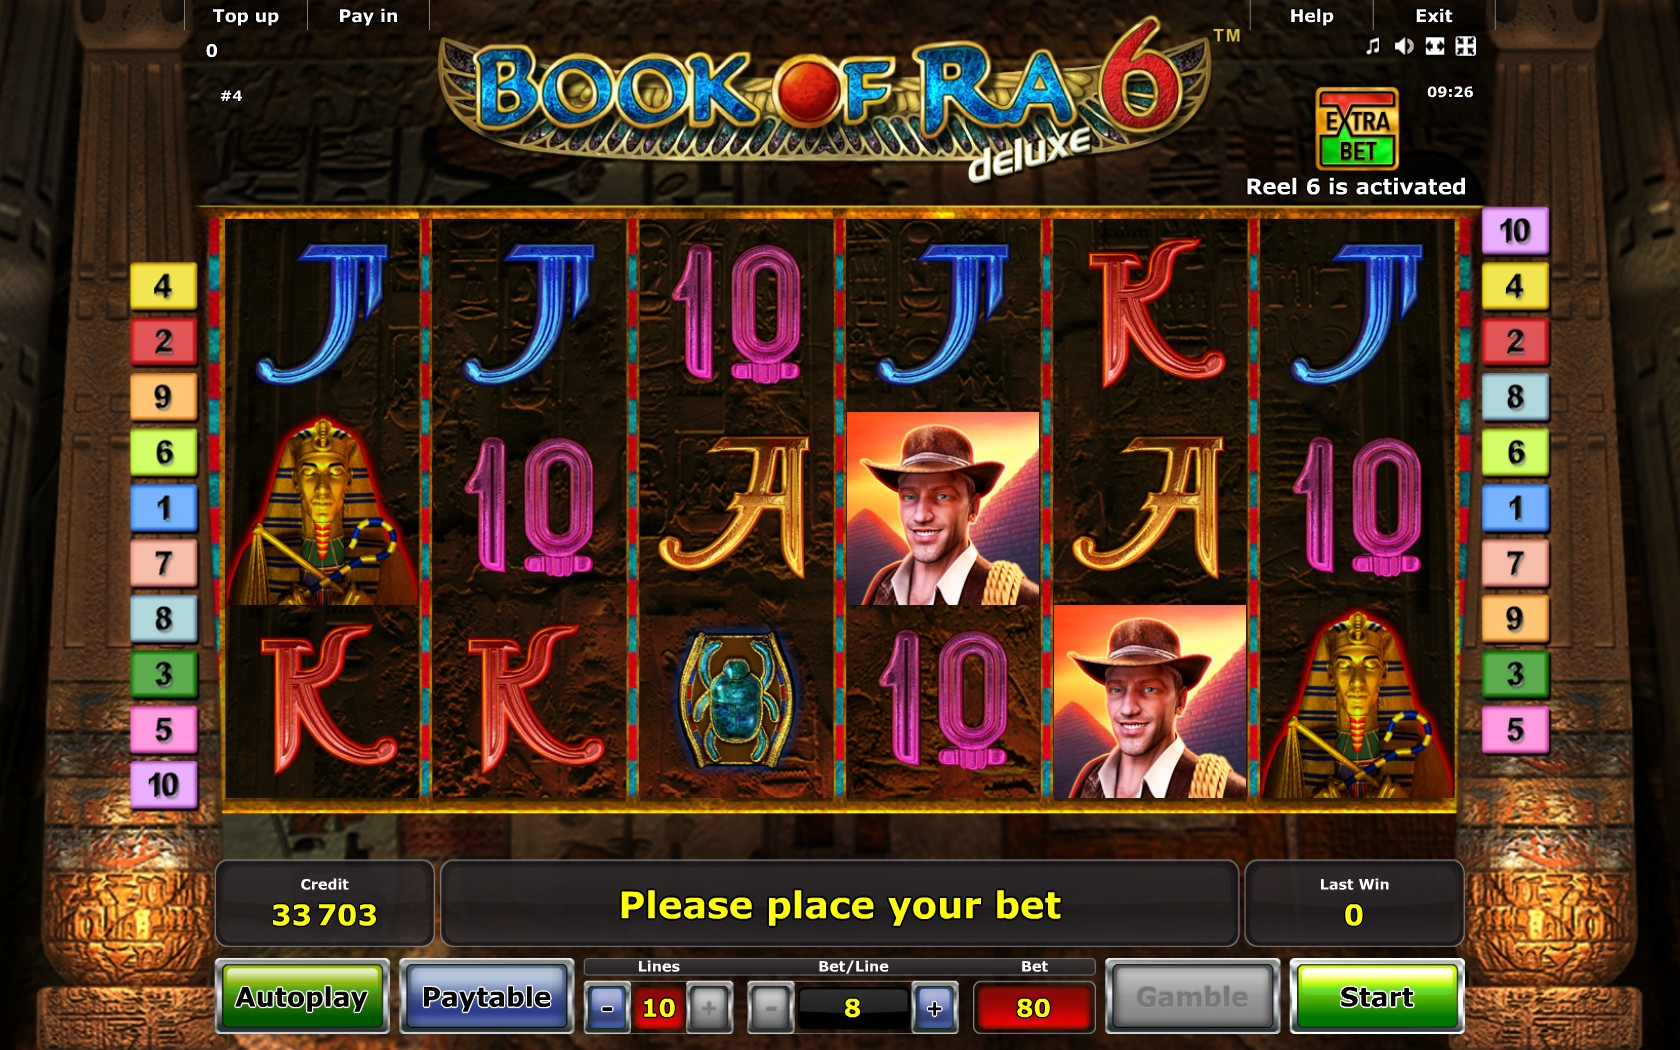 casino betting online buck of ra